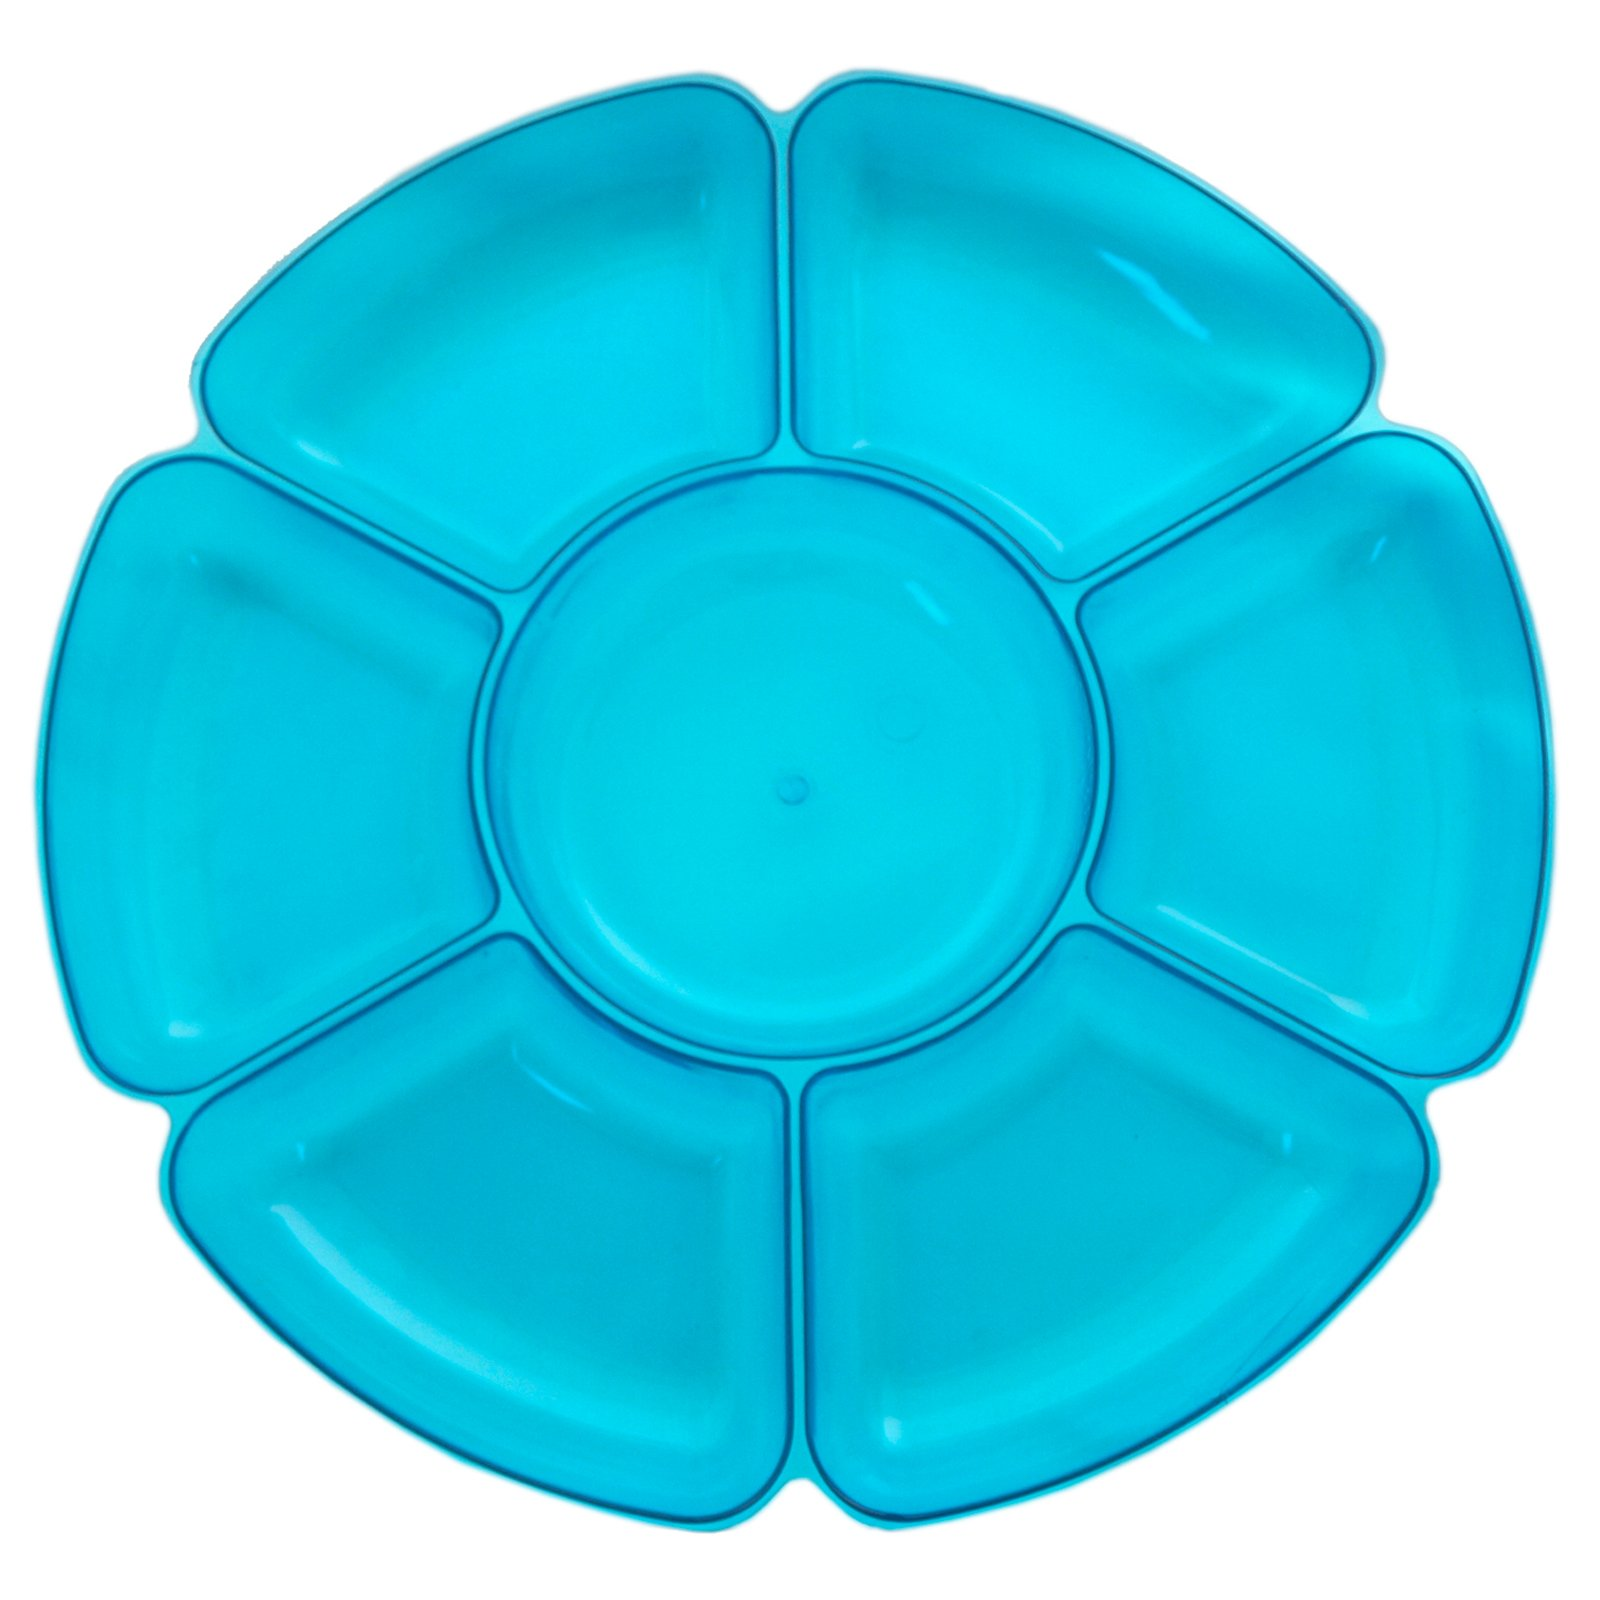 Neon Blue Round 7 Section Tray